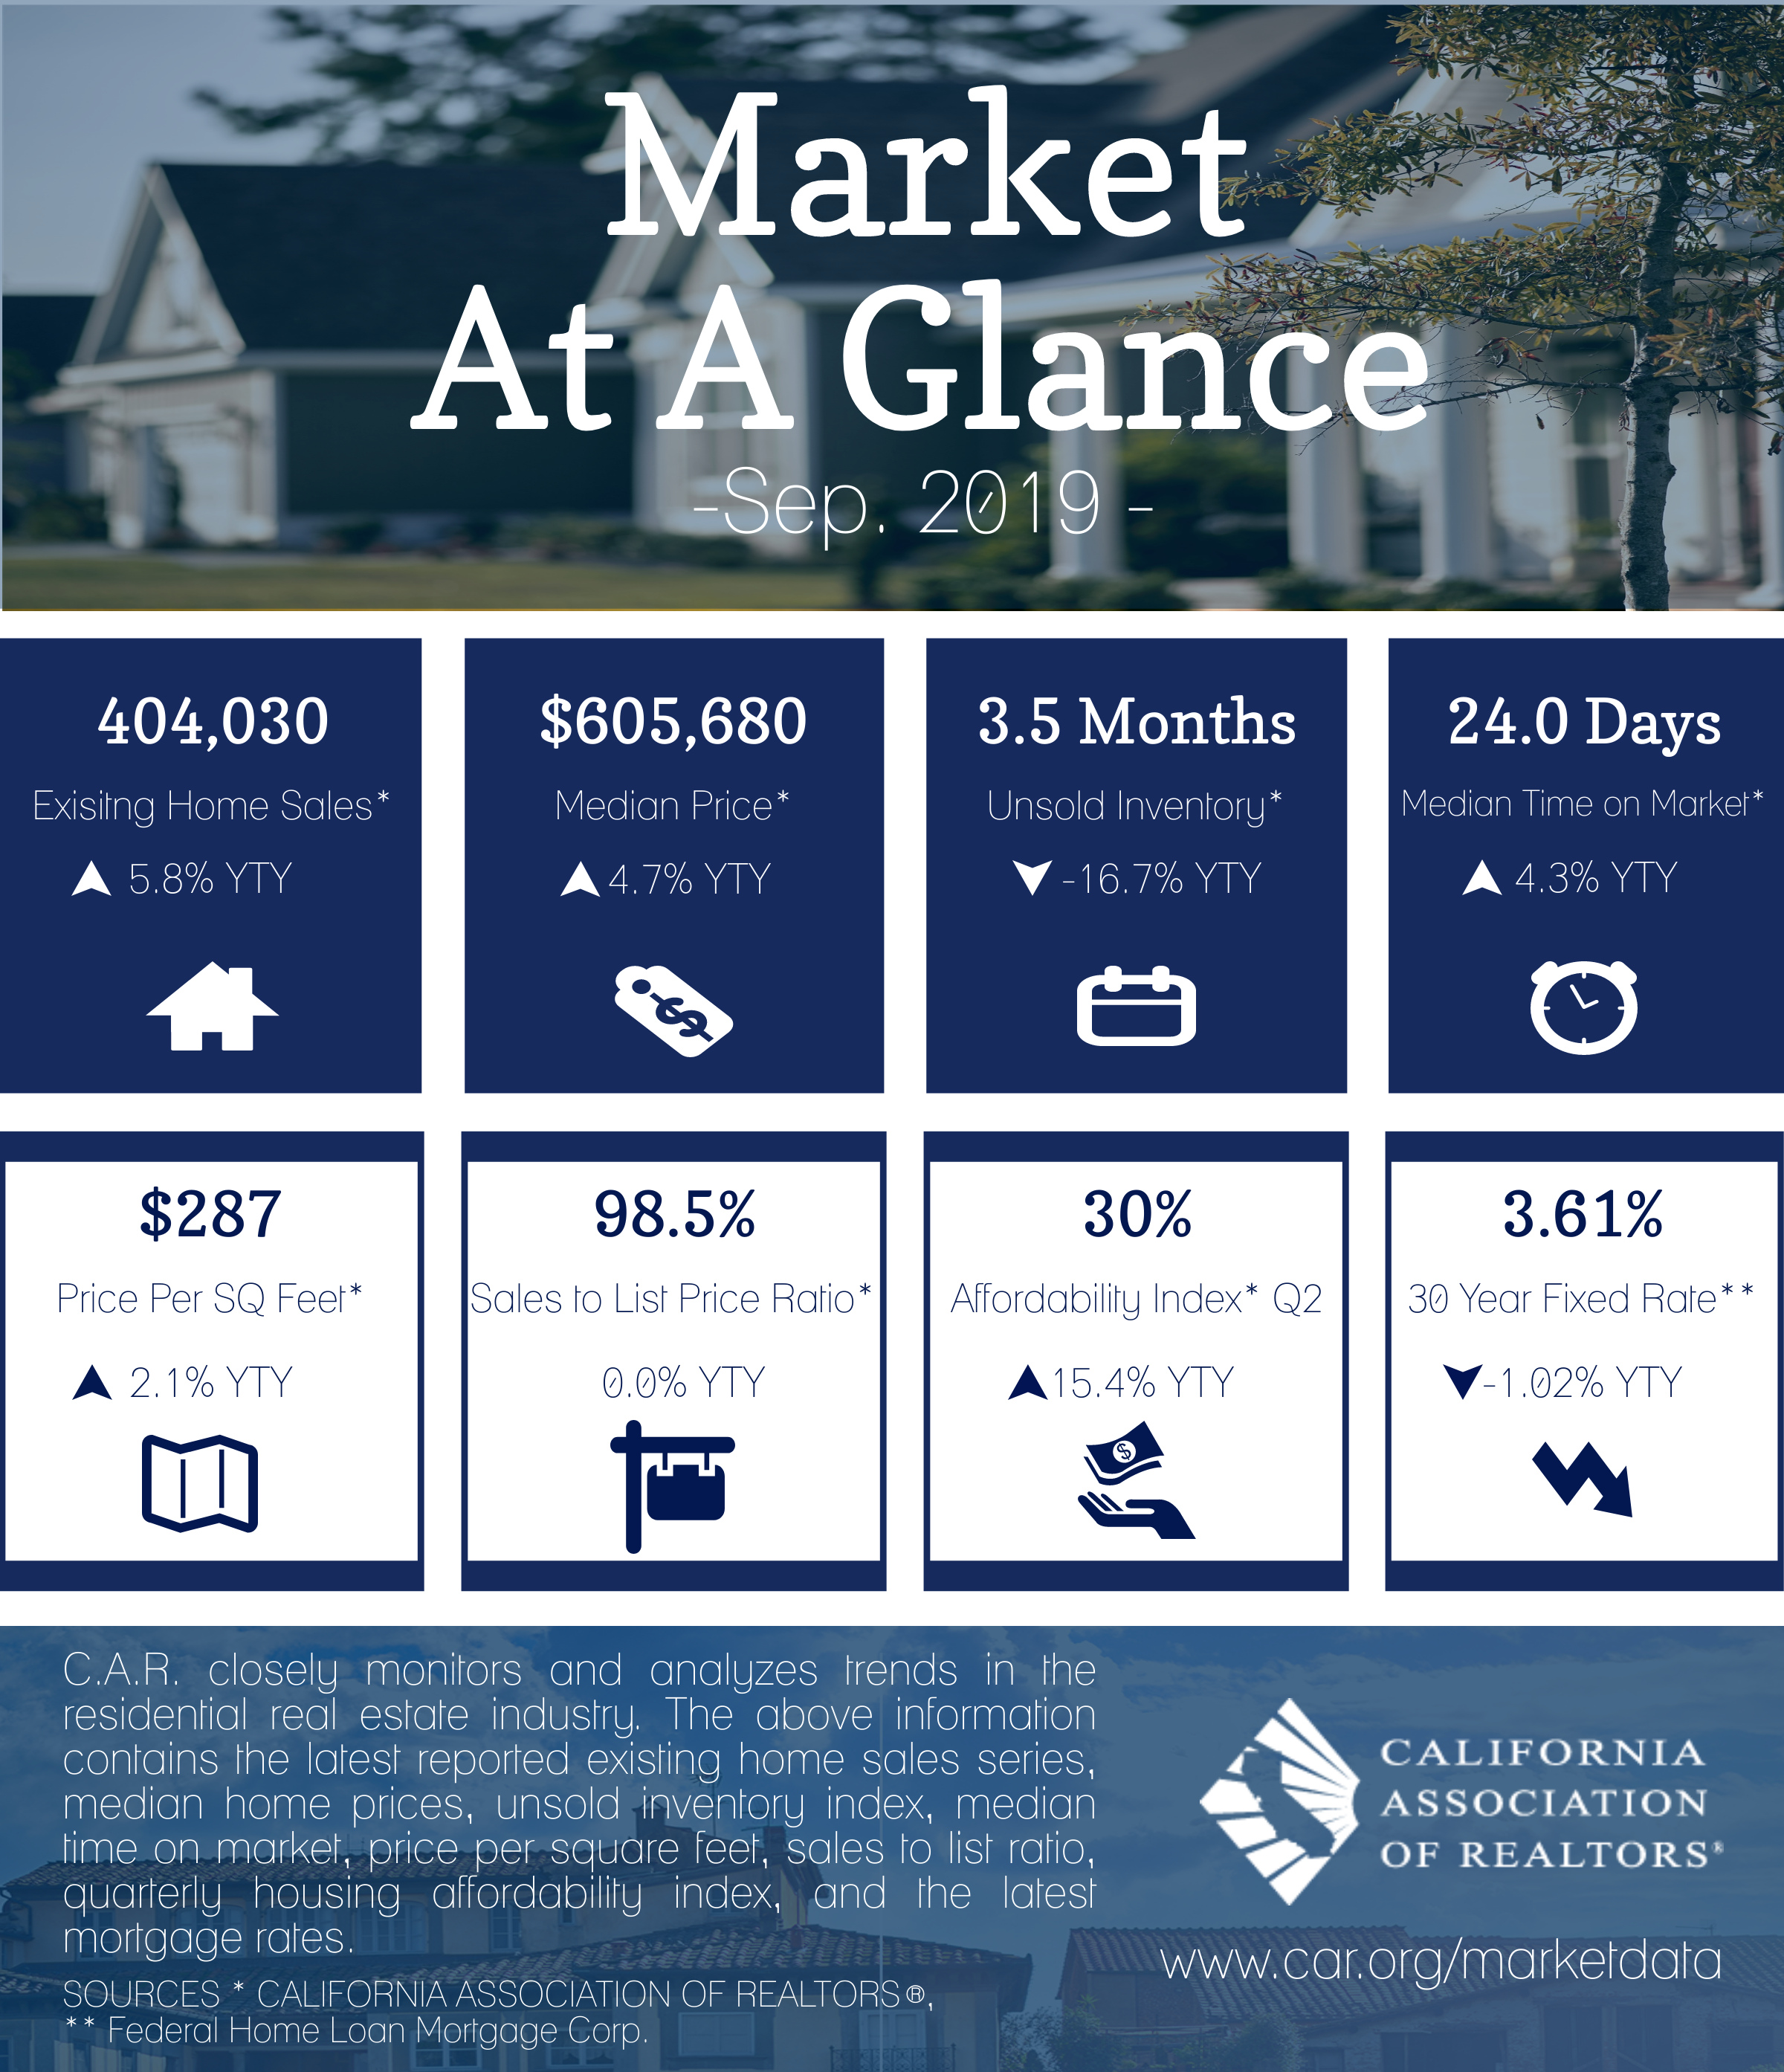 Market At A Glance September 2019